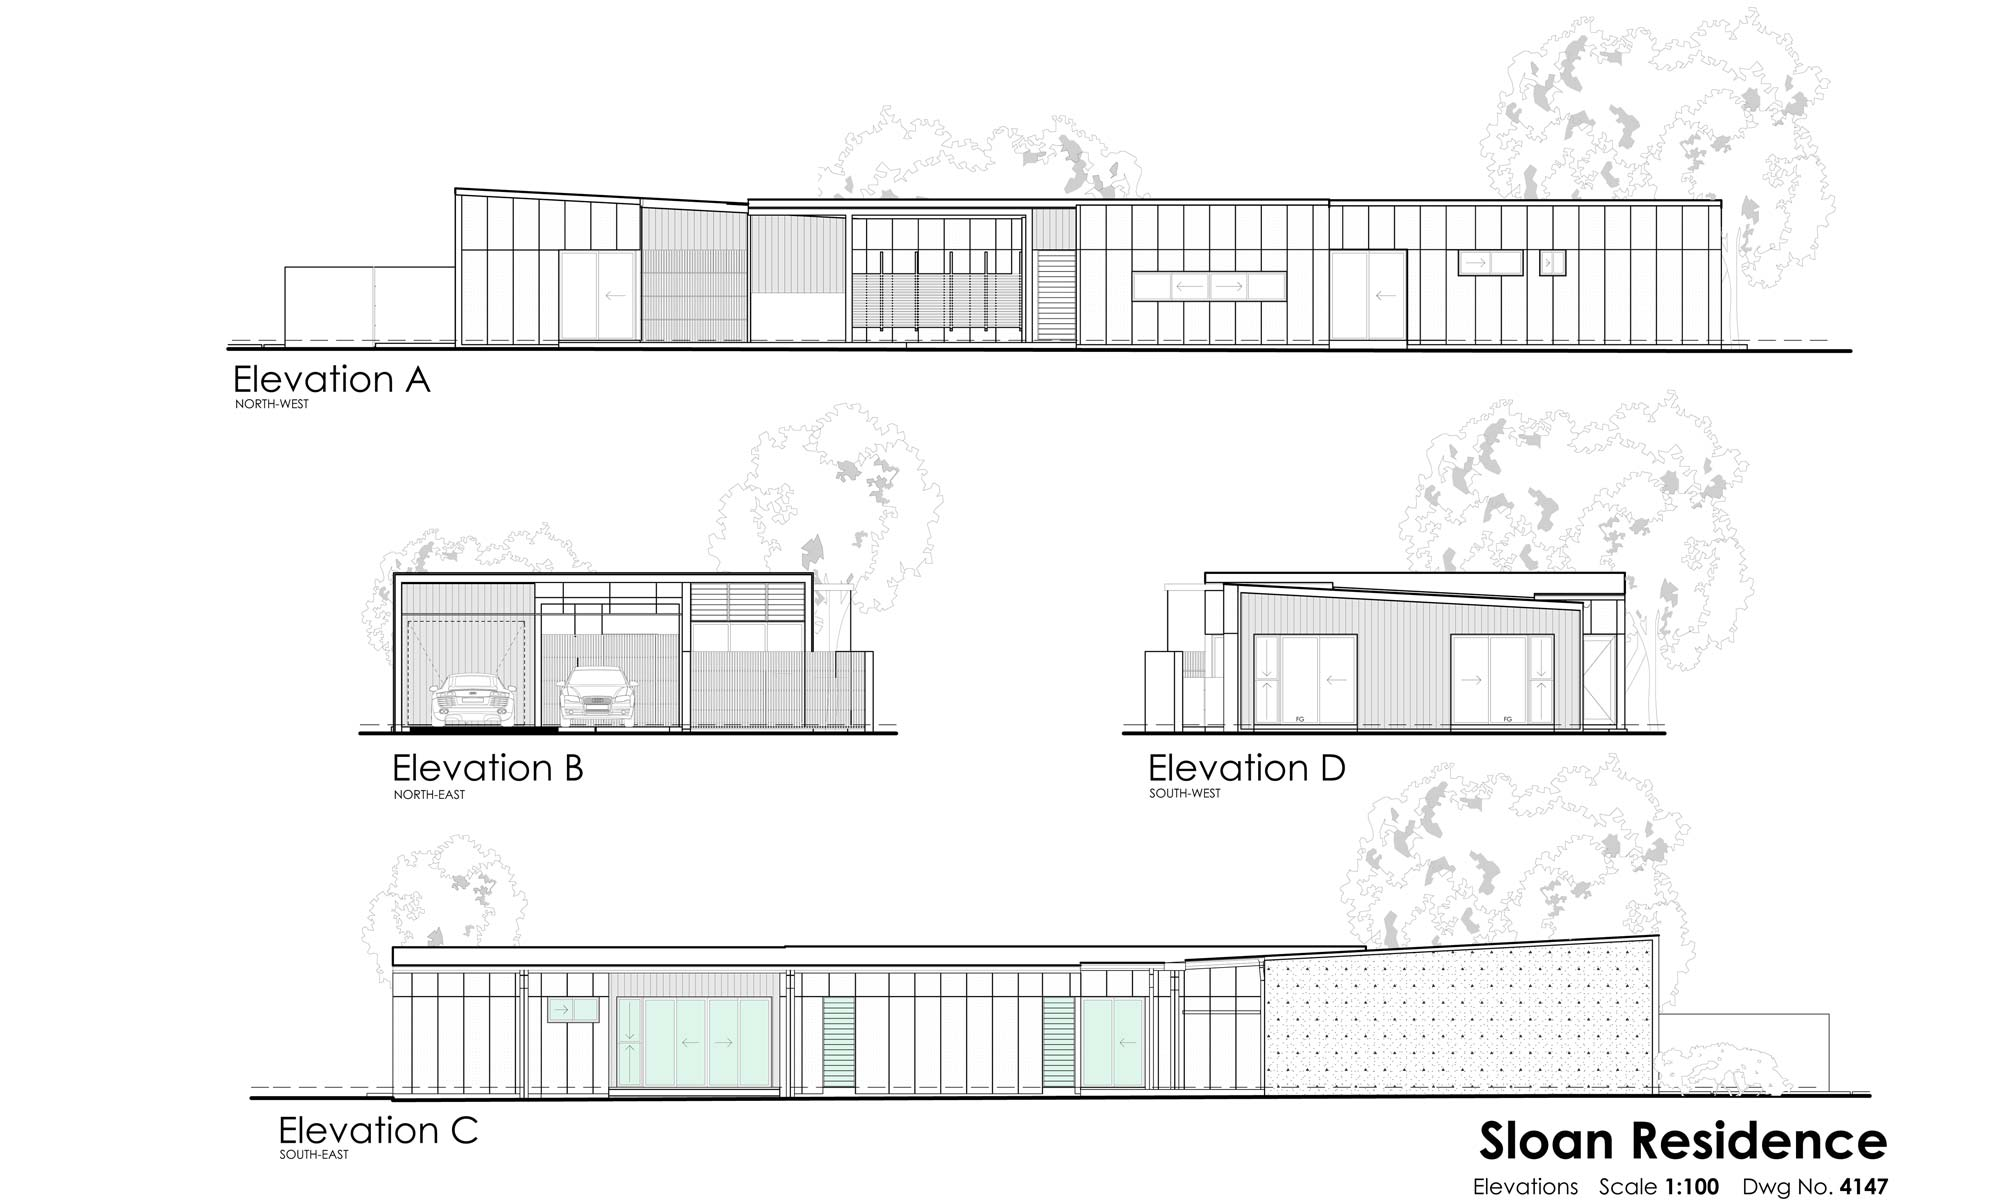 sloan residence elevations